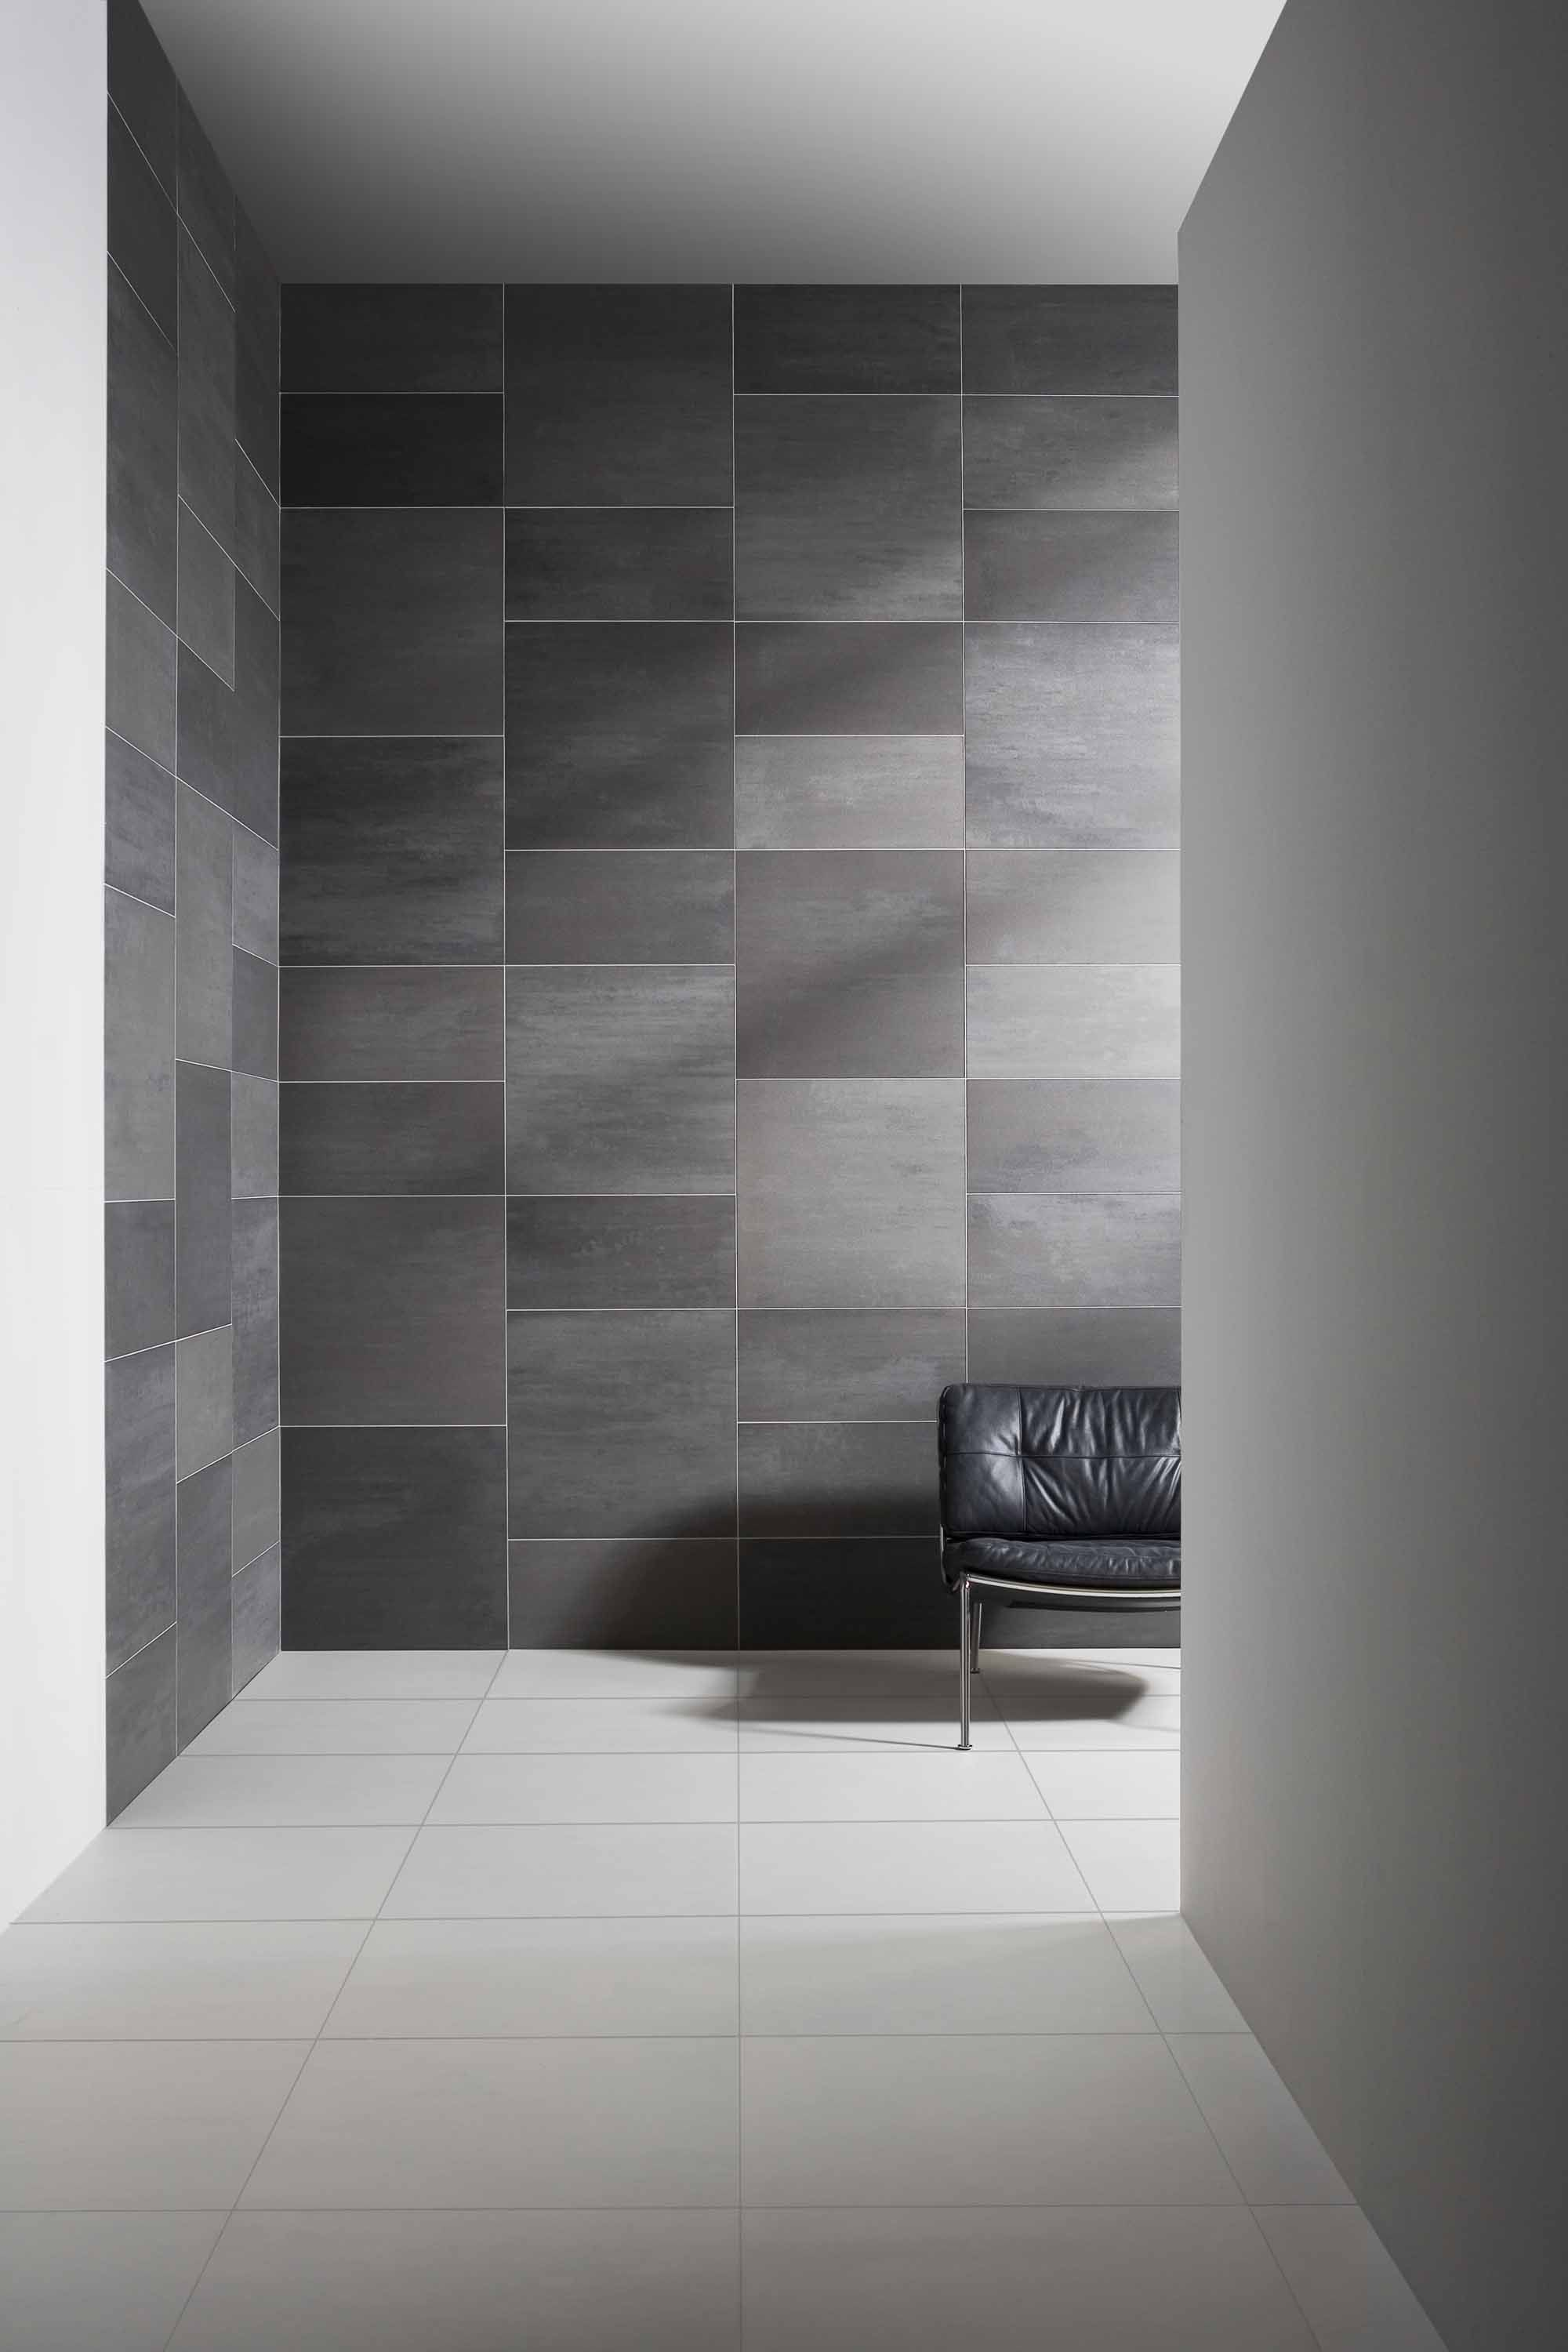 Terratones Collection In Restrained Ceramic Hues For Inside And Outside Avec Images Tuile Parement Mural Plancher